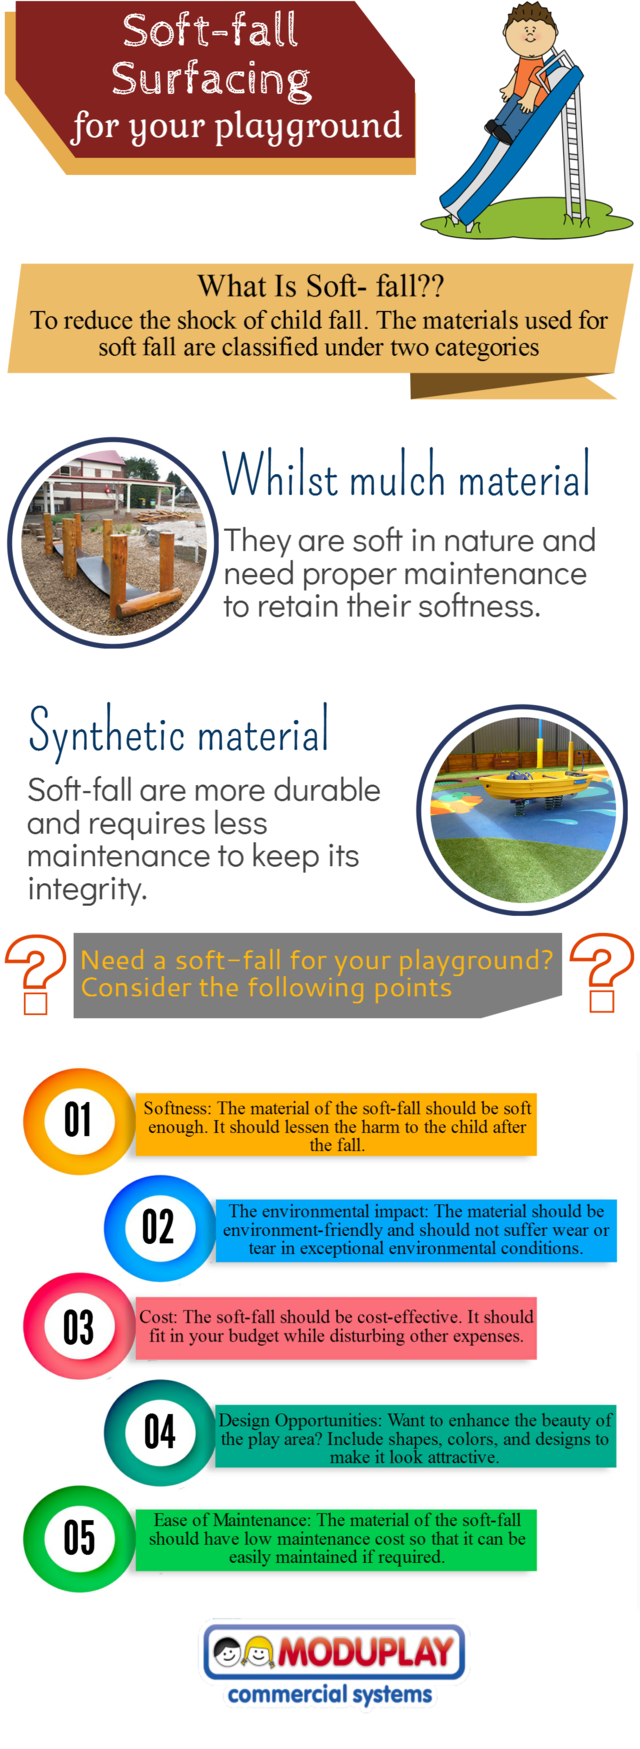 Soft fal surfacing for your playground